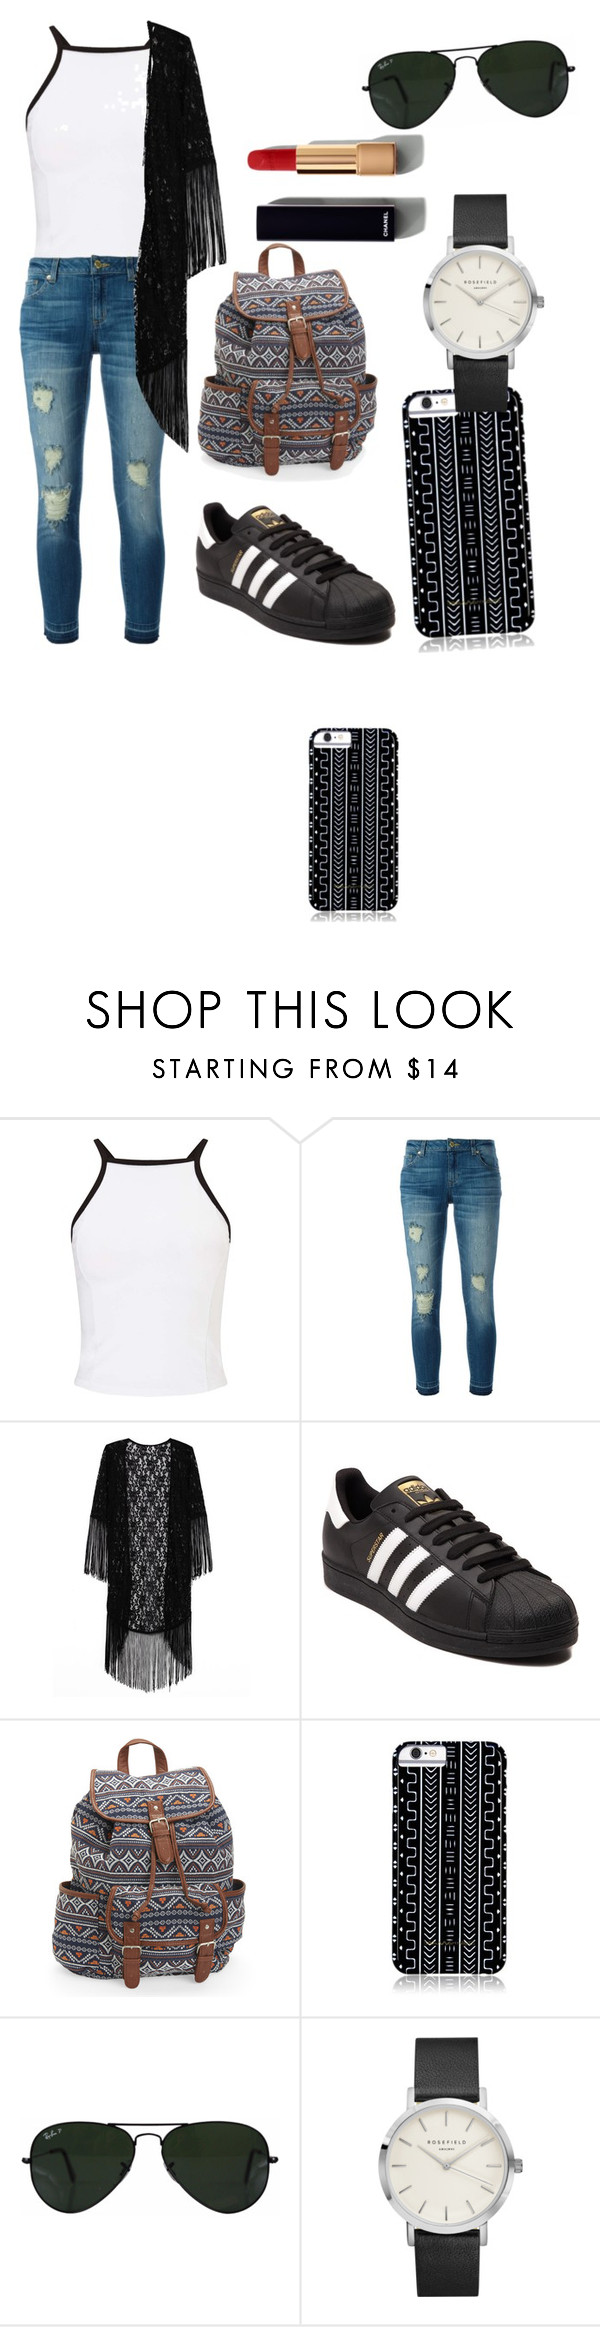 """""""carcelllllkkkkll"""" by sofilo2016 ❤ liked on Polyvore featuring Miss Selfridge, MICHAEL Michael Kors, adidas, Aéropostale, Savannah Hayes, Ray-Ban and Chanel"""